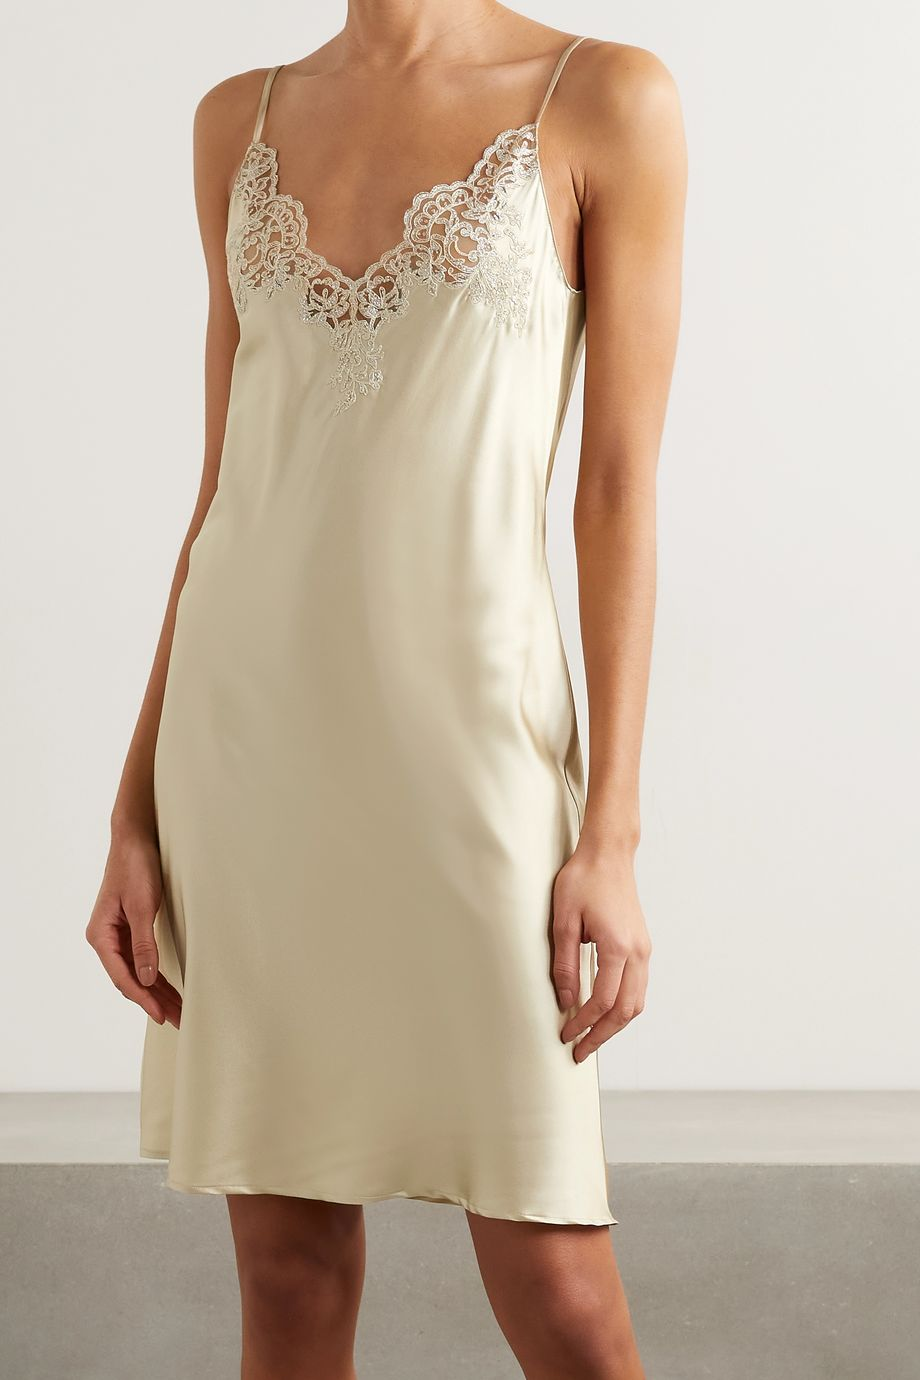 I.D. Sarrieri In The Mood For Love metallic lace-trimmed silk-blend satin chemise